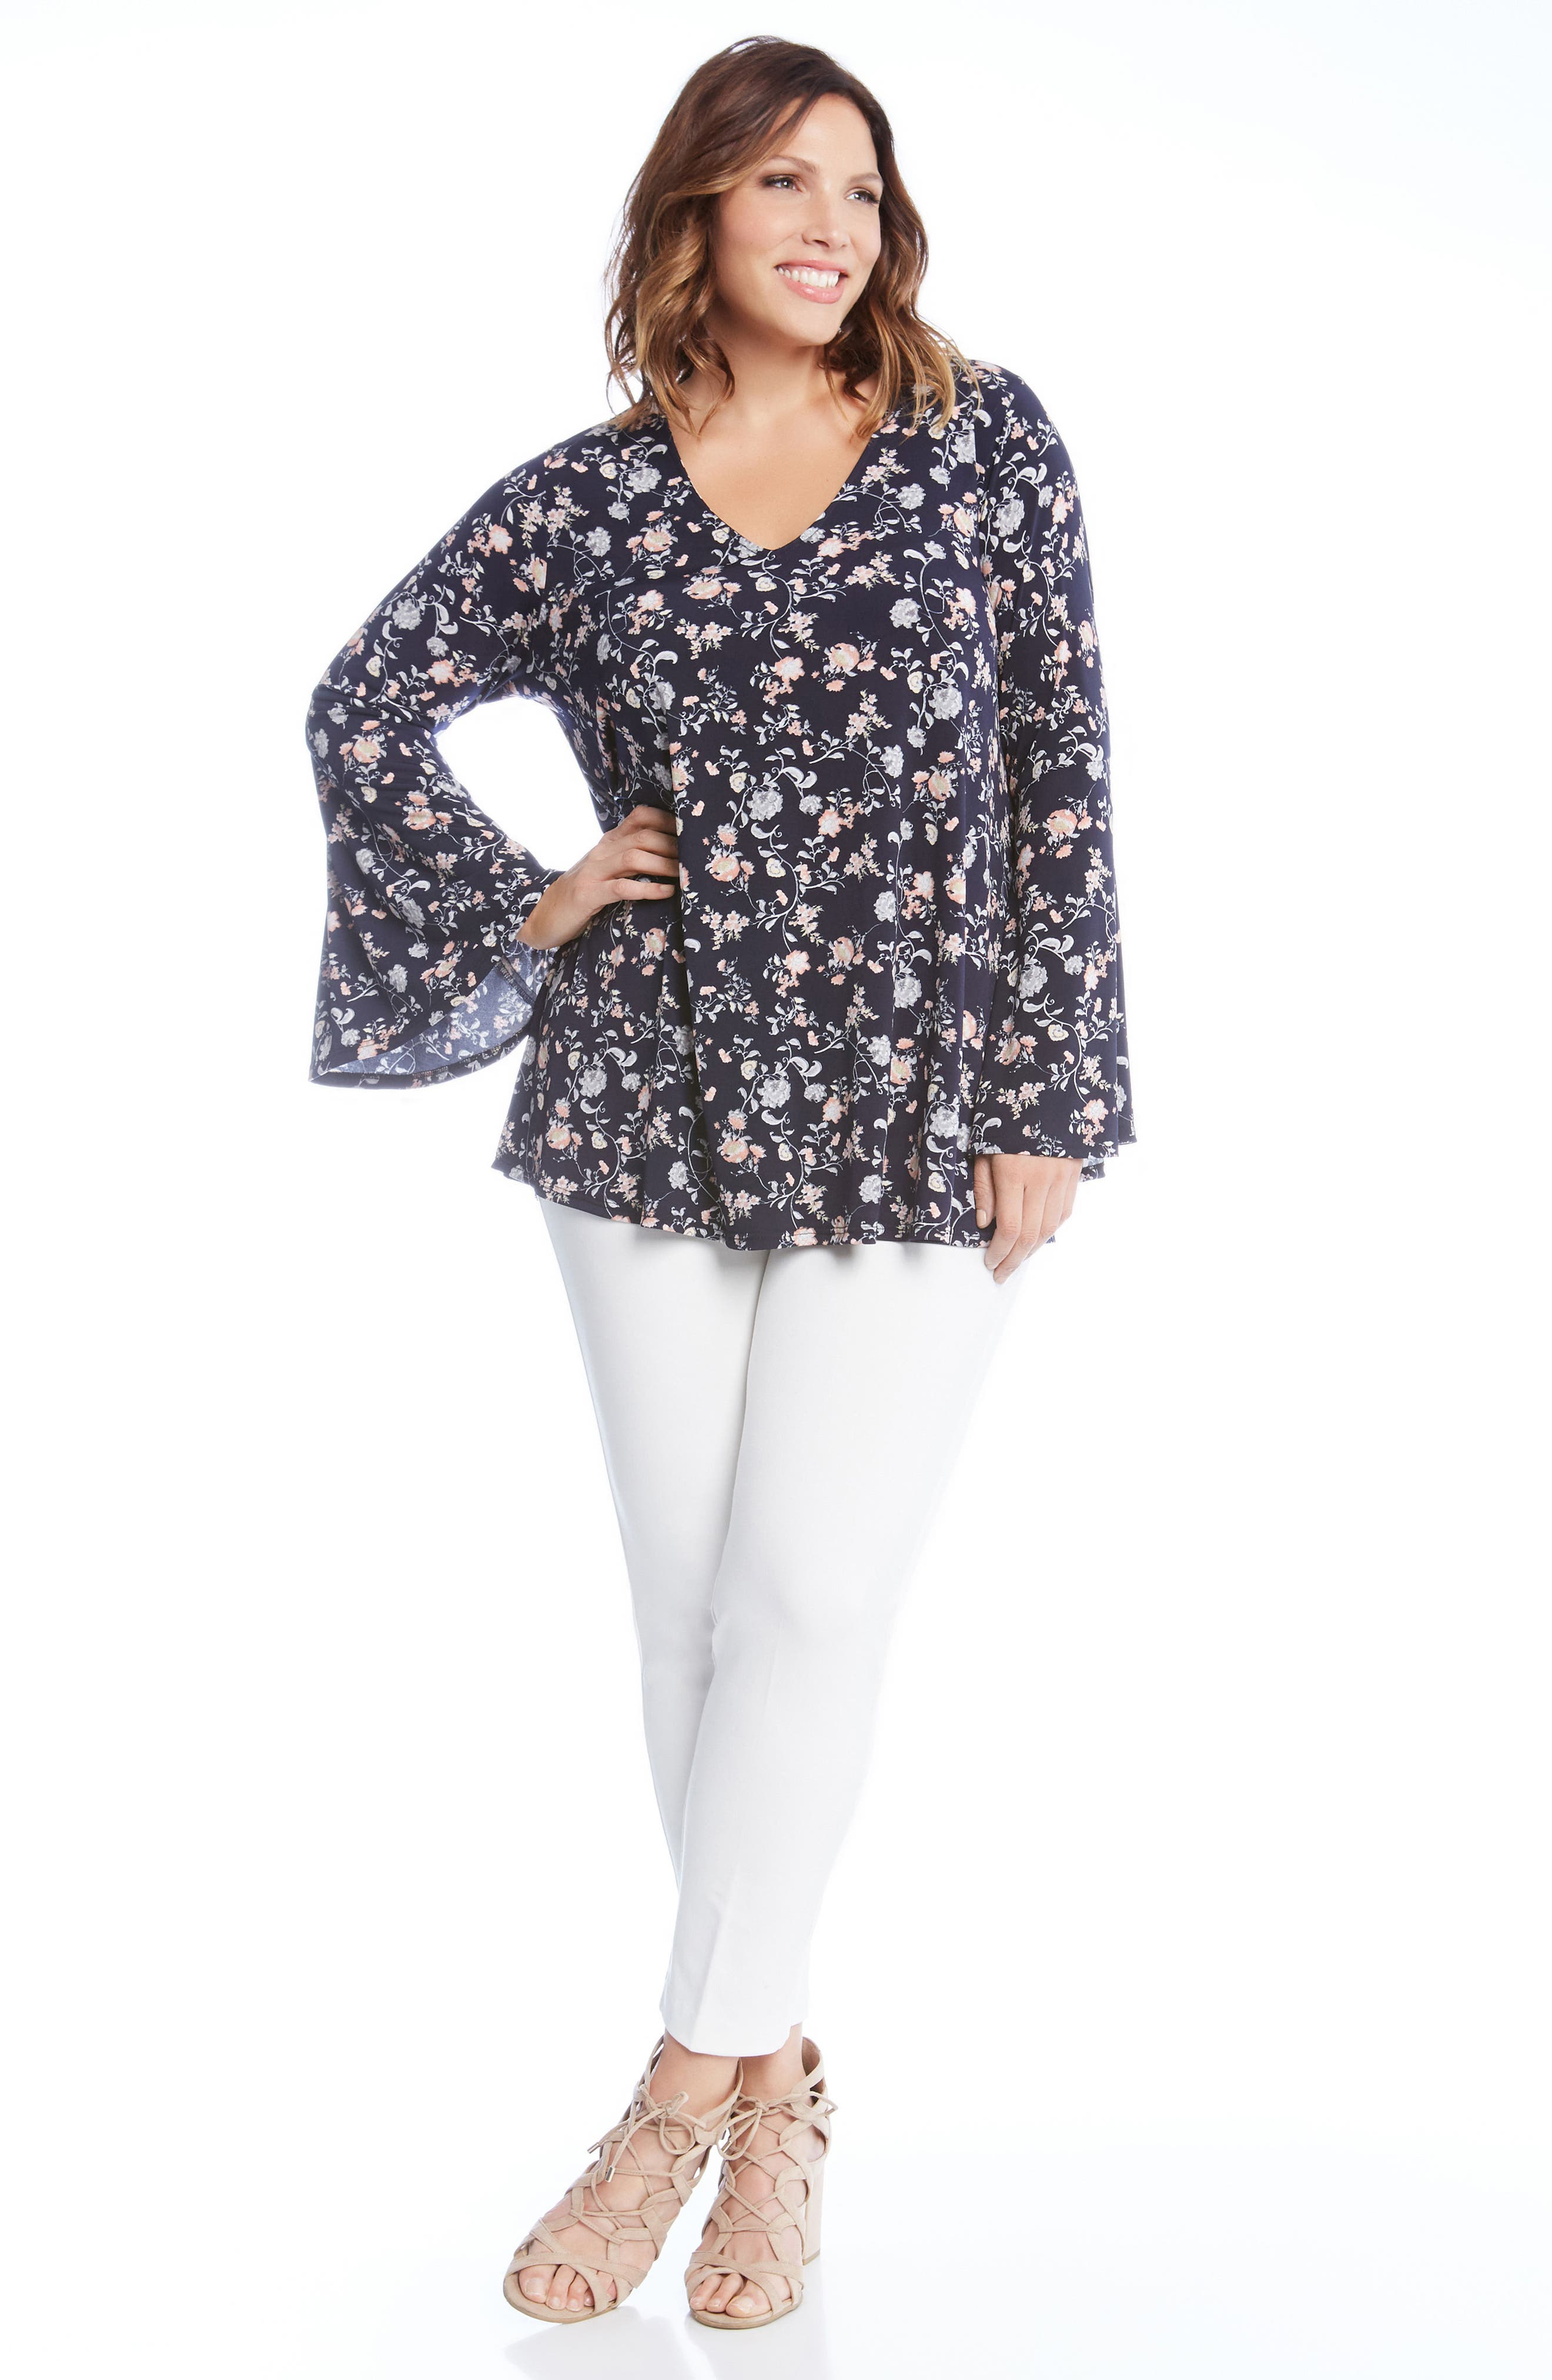 Kane Kane Bell Sleeve Floral Top,                             Alternate thumbnail 3, color,                             460